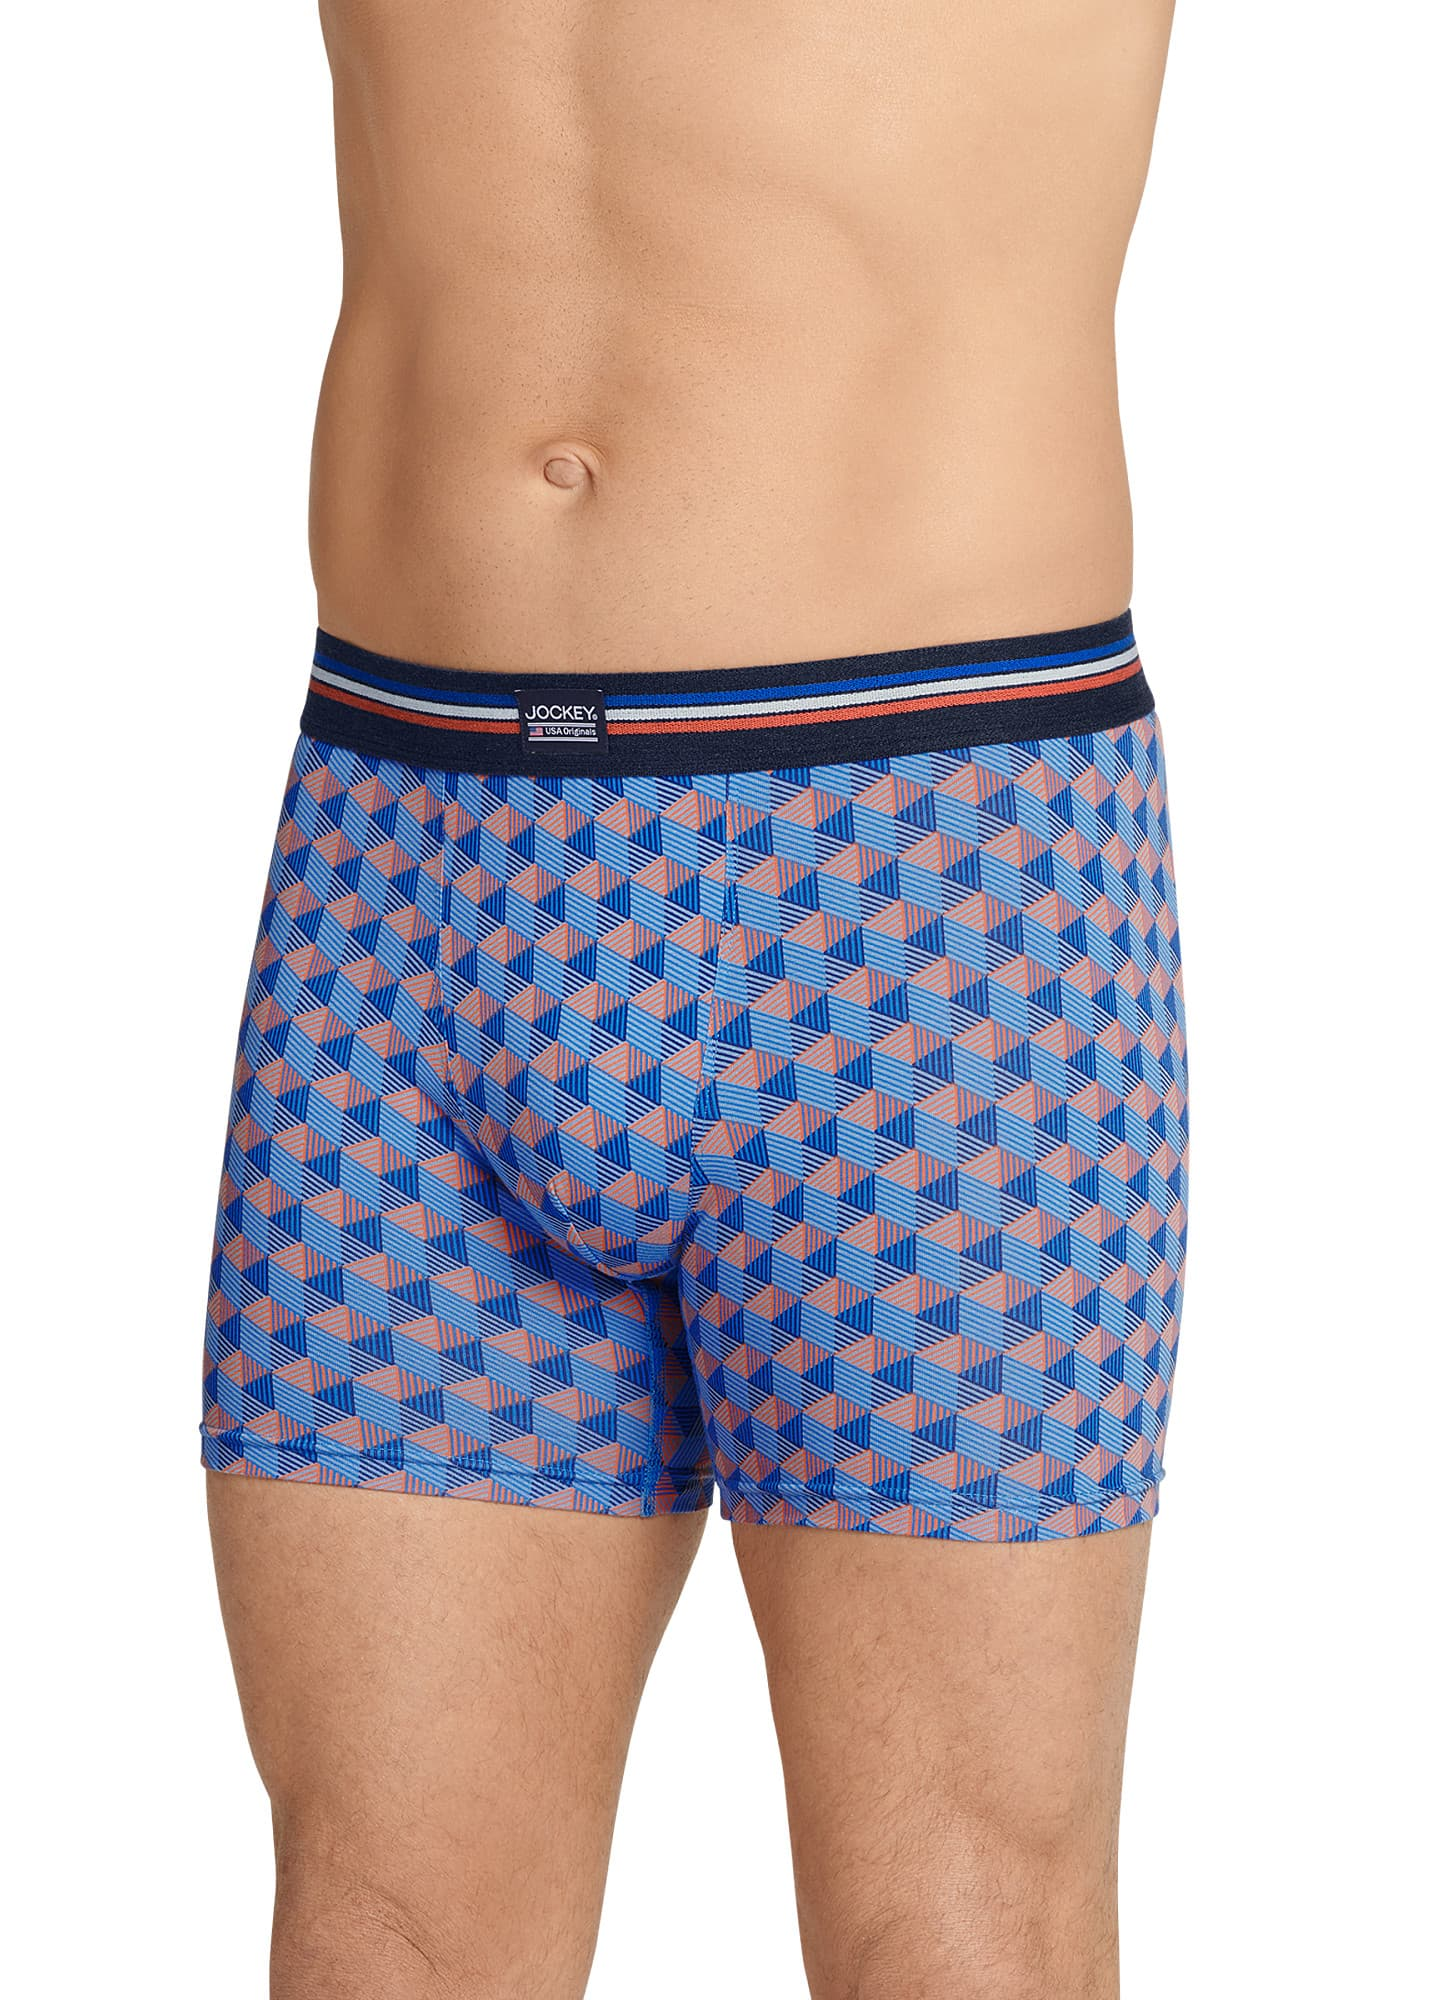 3Pk. Jockey Mens Stretch No-Fly Boxer Briefs